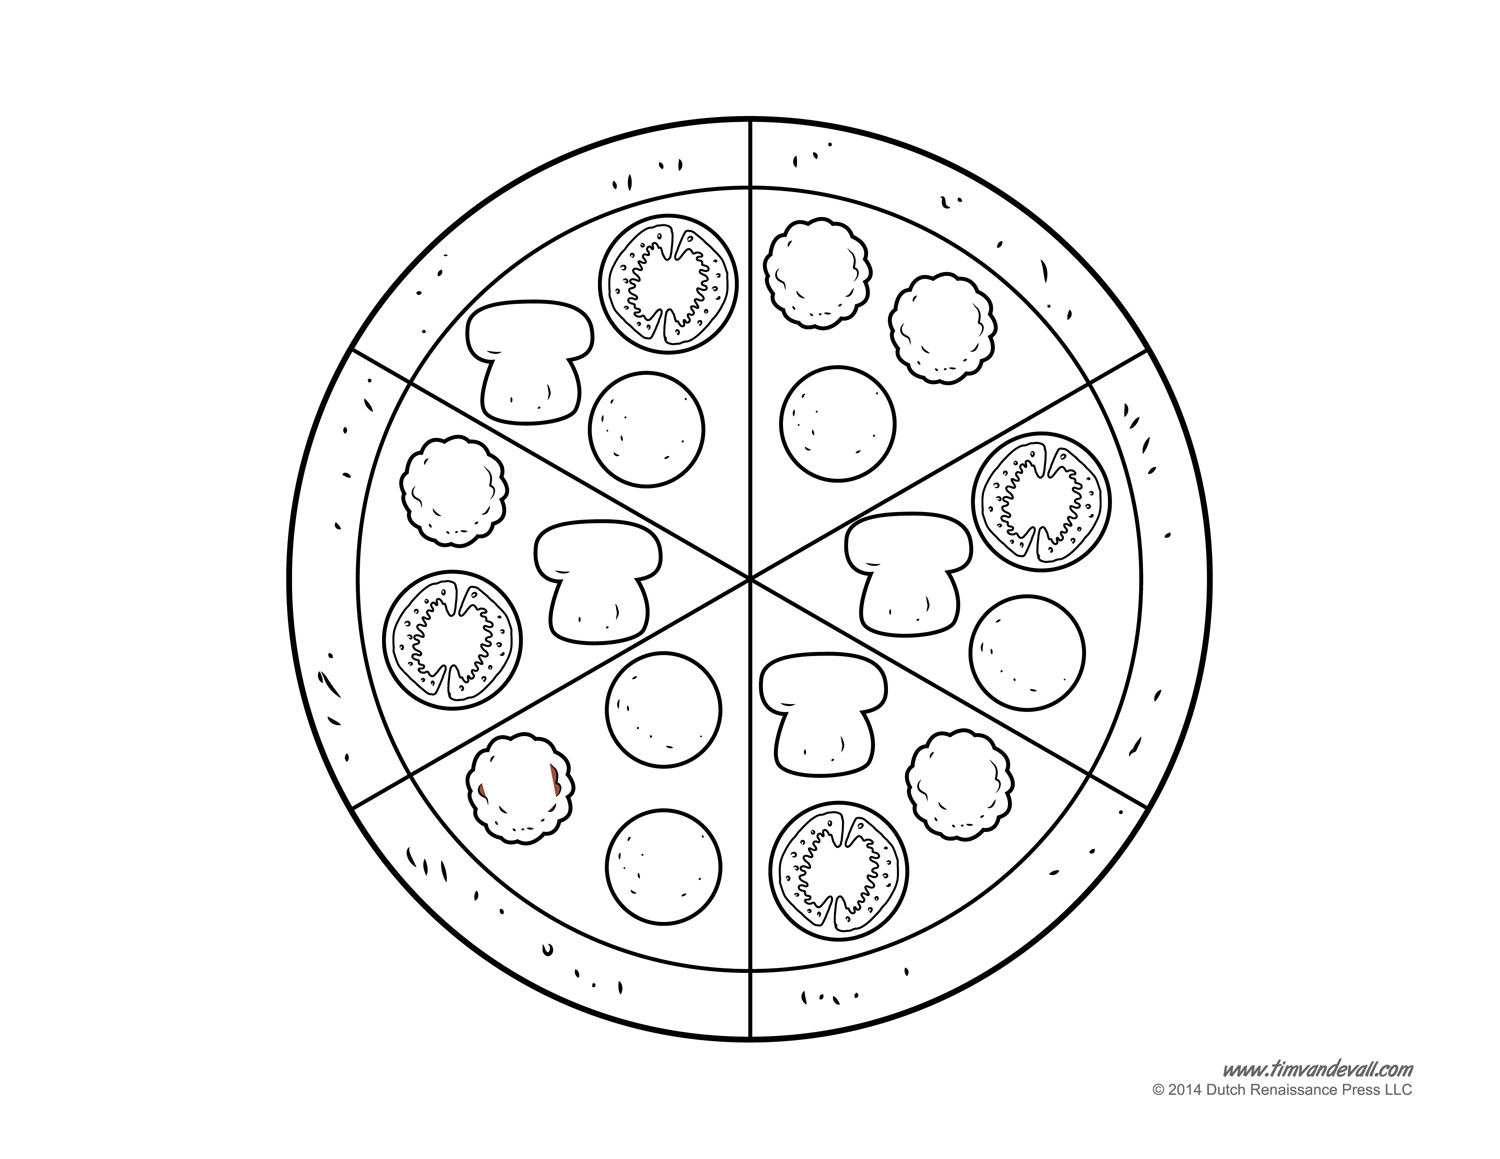 photo regarding Pizza Printable titled pizza-template - Tims Printables